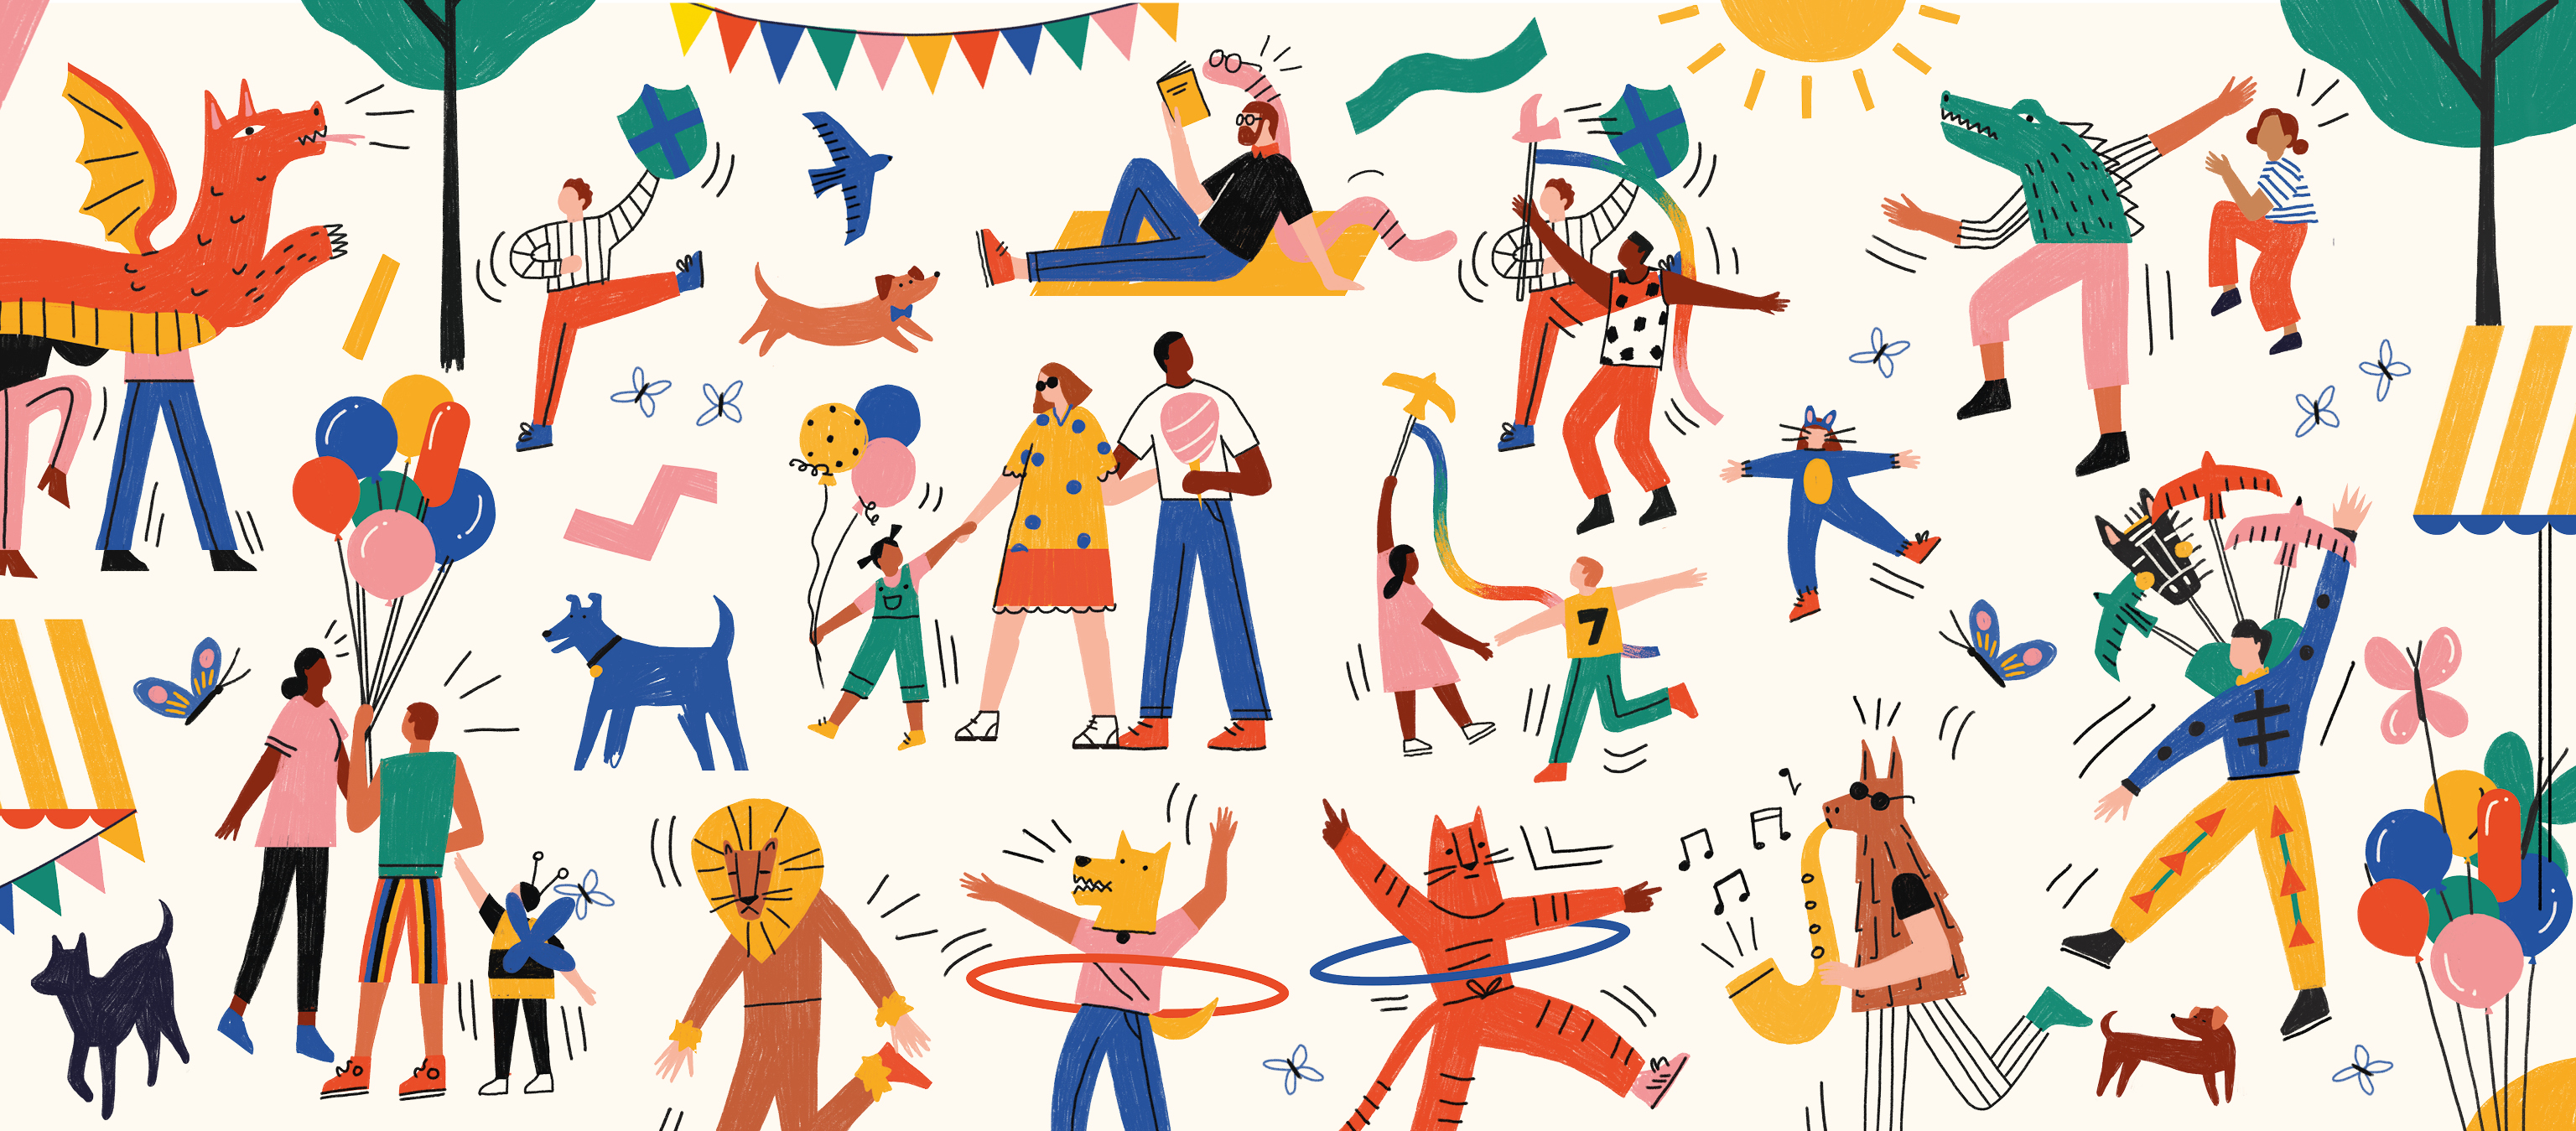 Smithfield Street Party illustrations